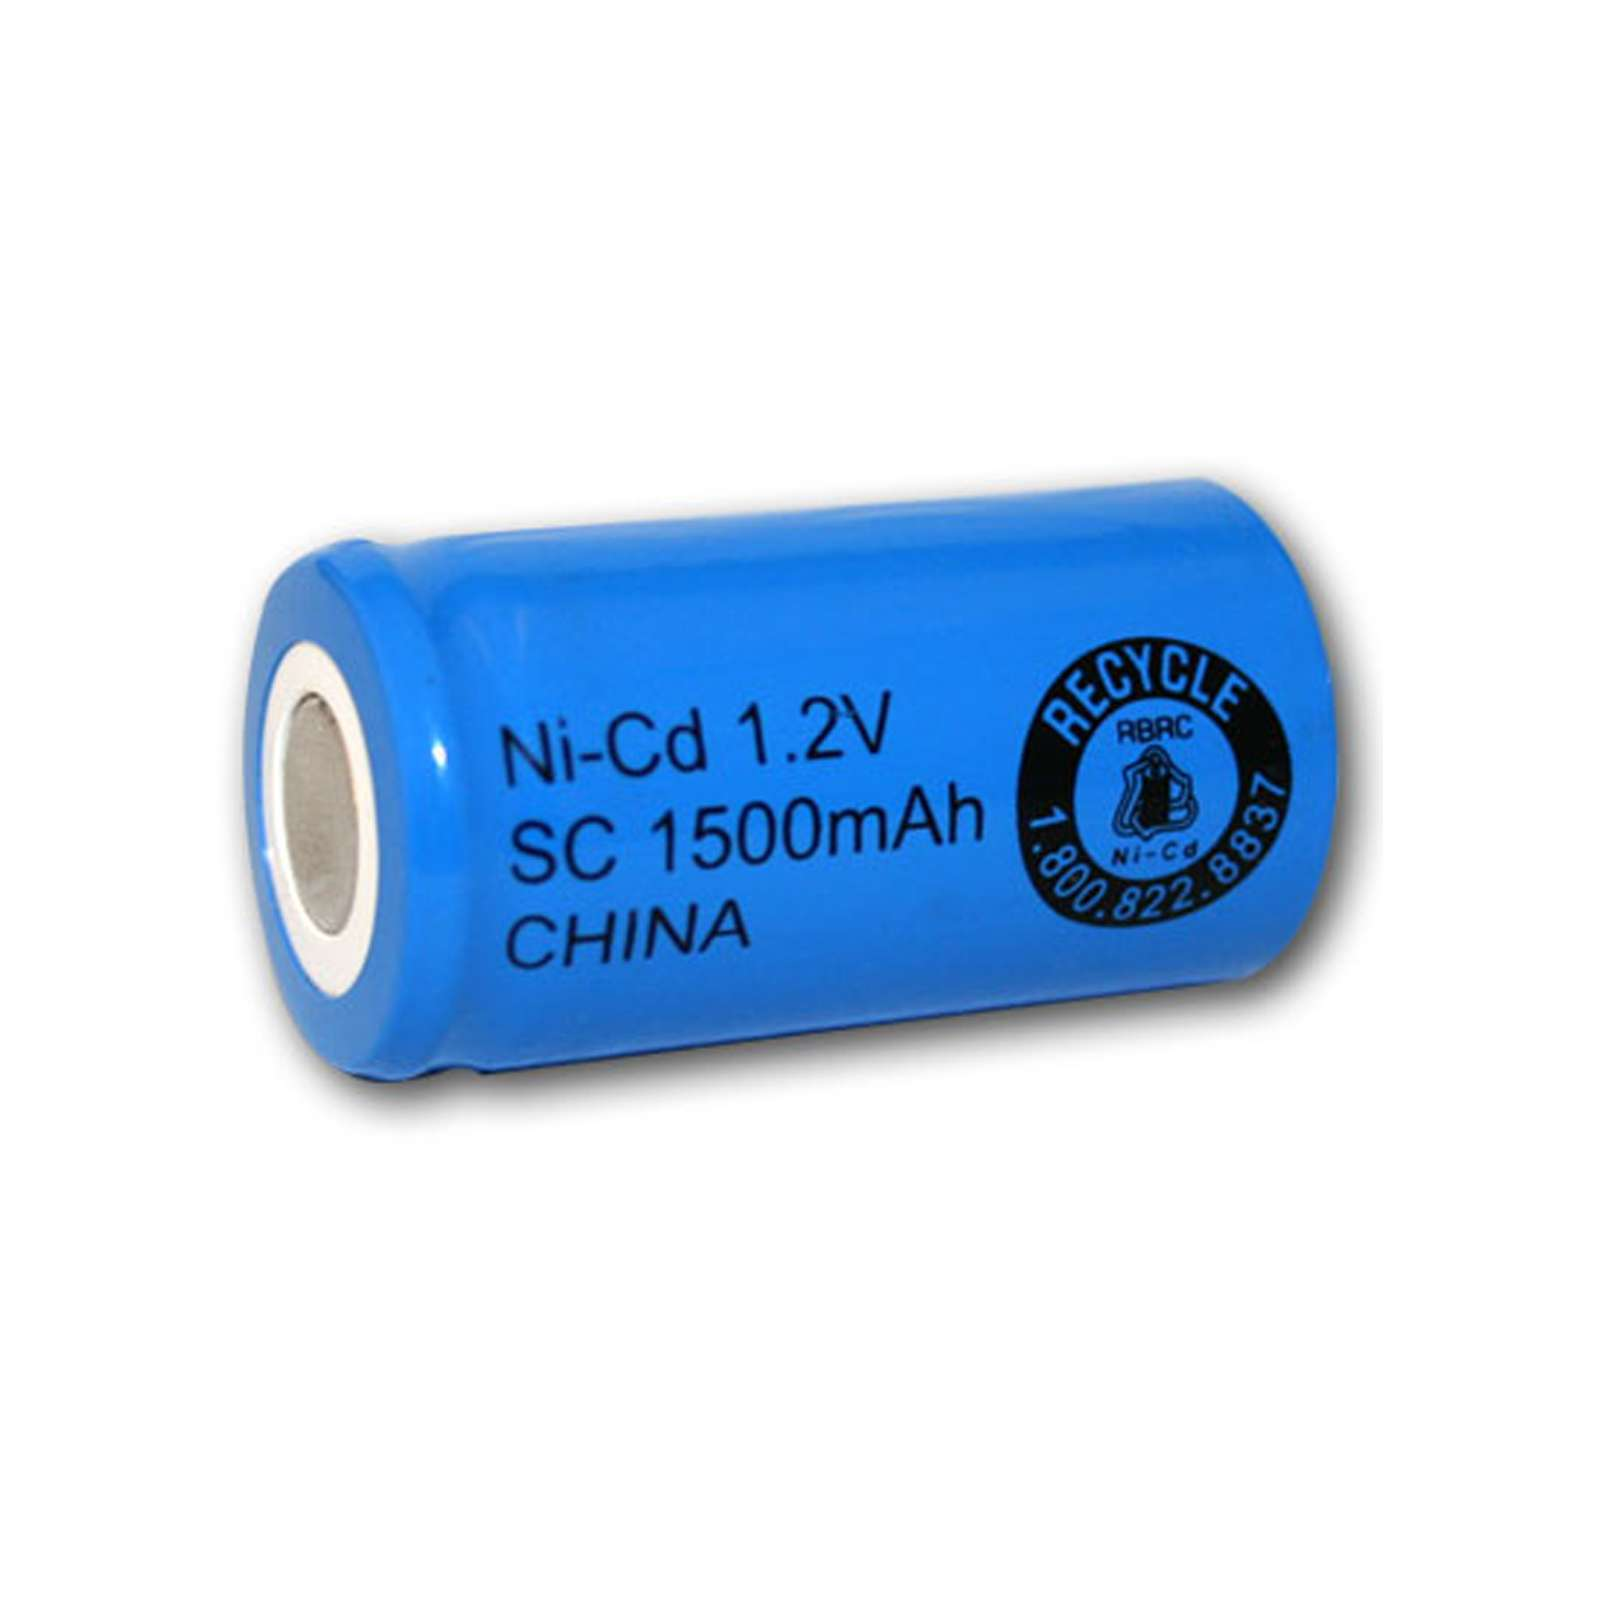 Exell 1 2v 1500mah Nicd Subc Rechargeable Battery Flat Top